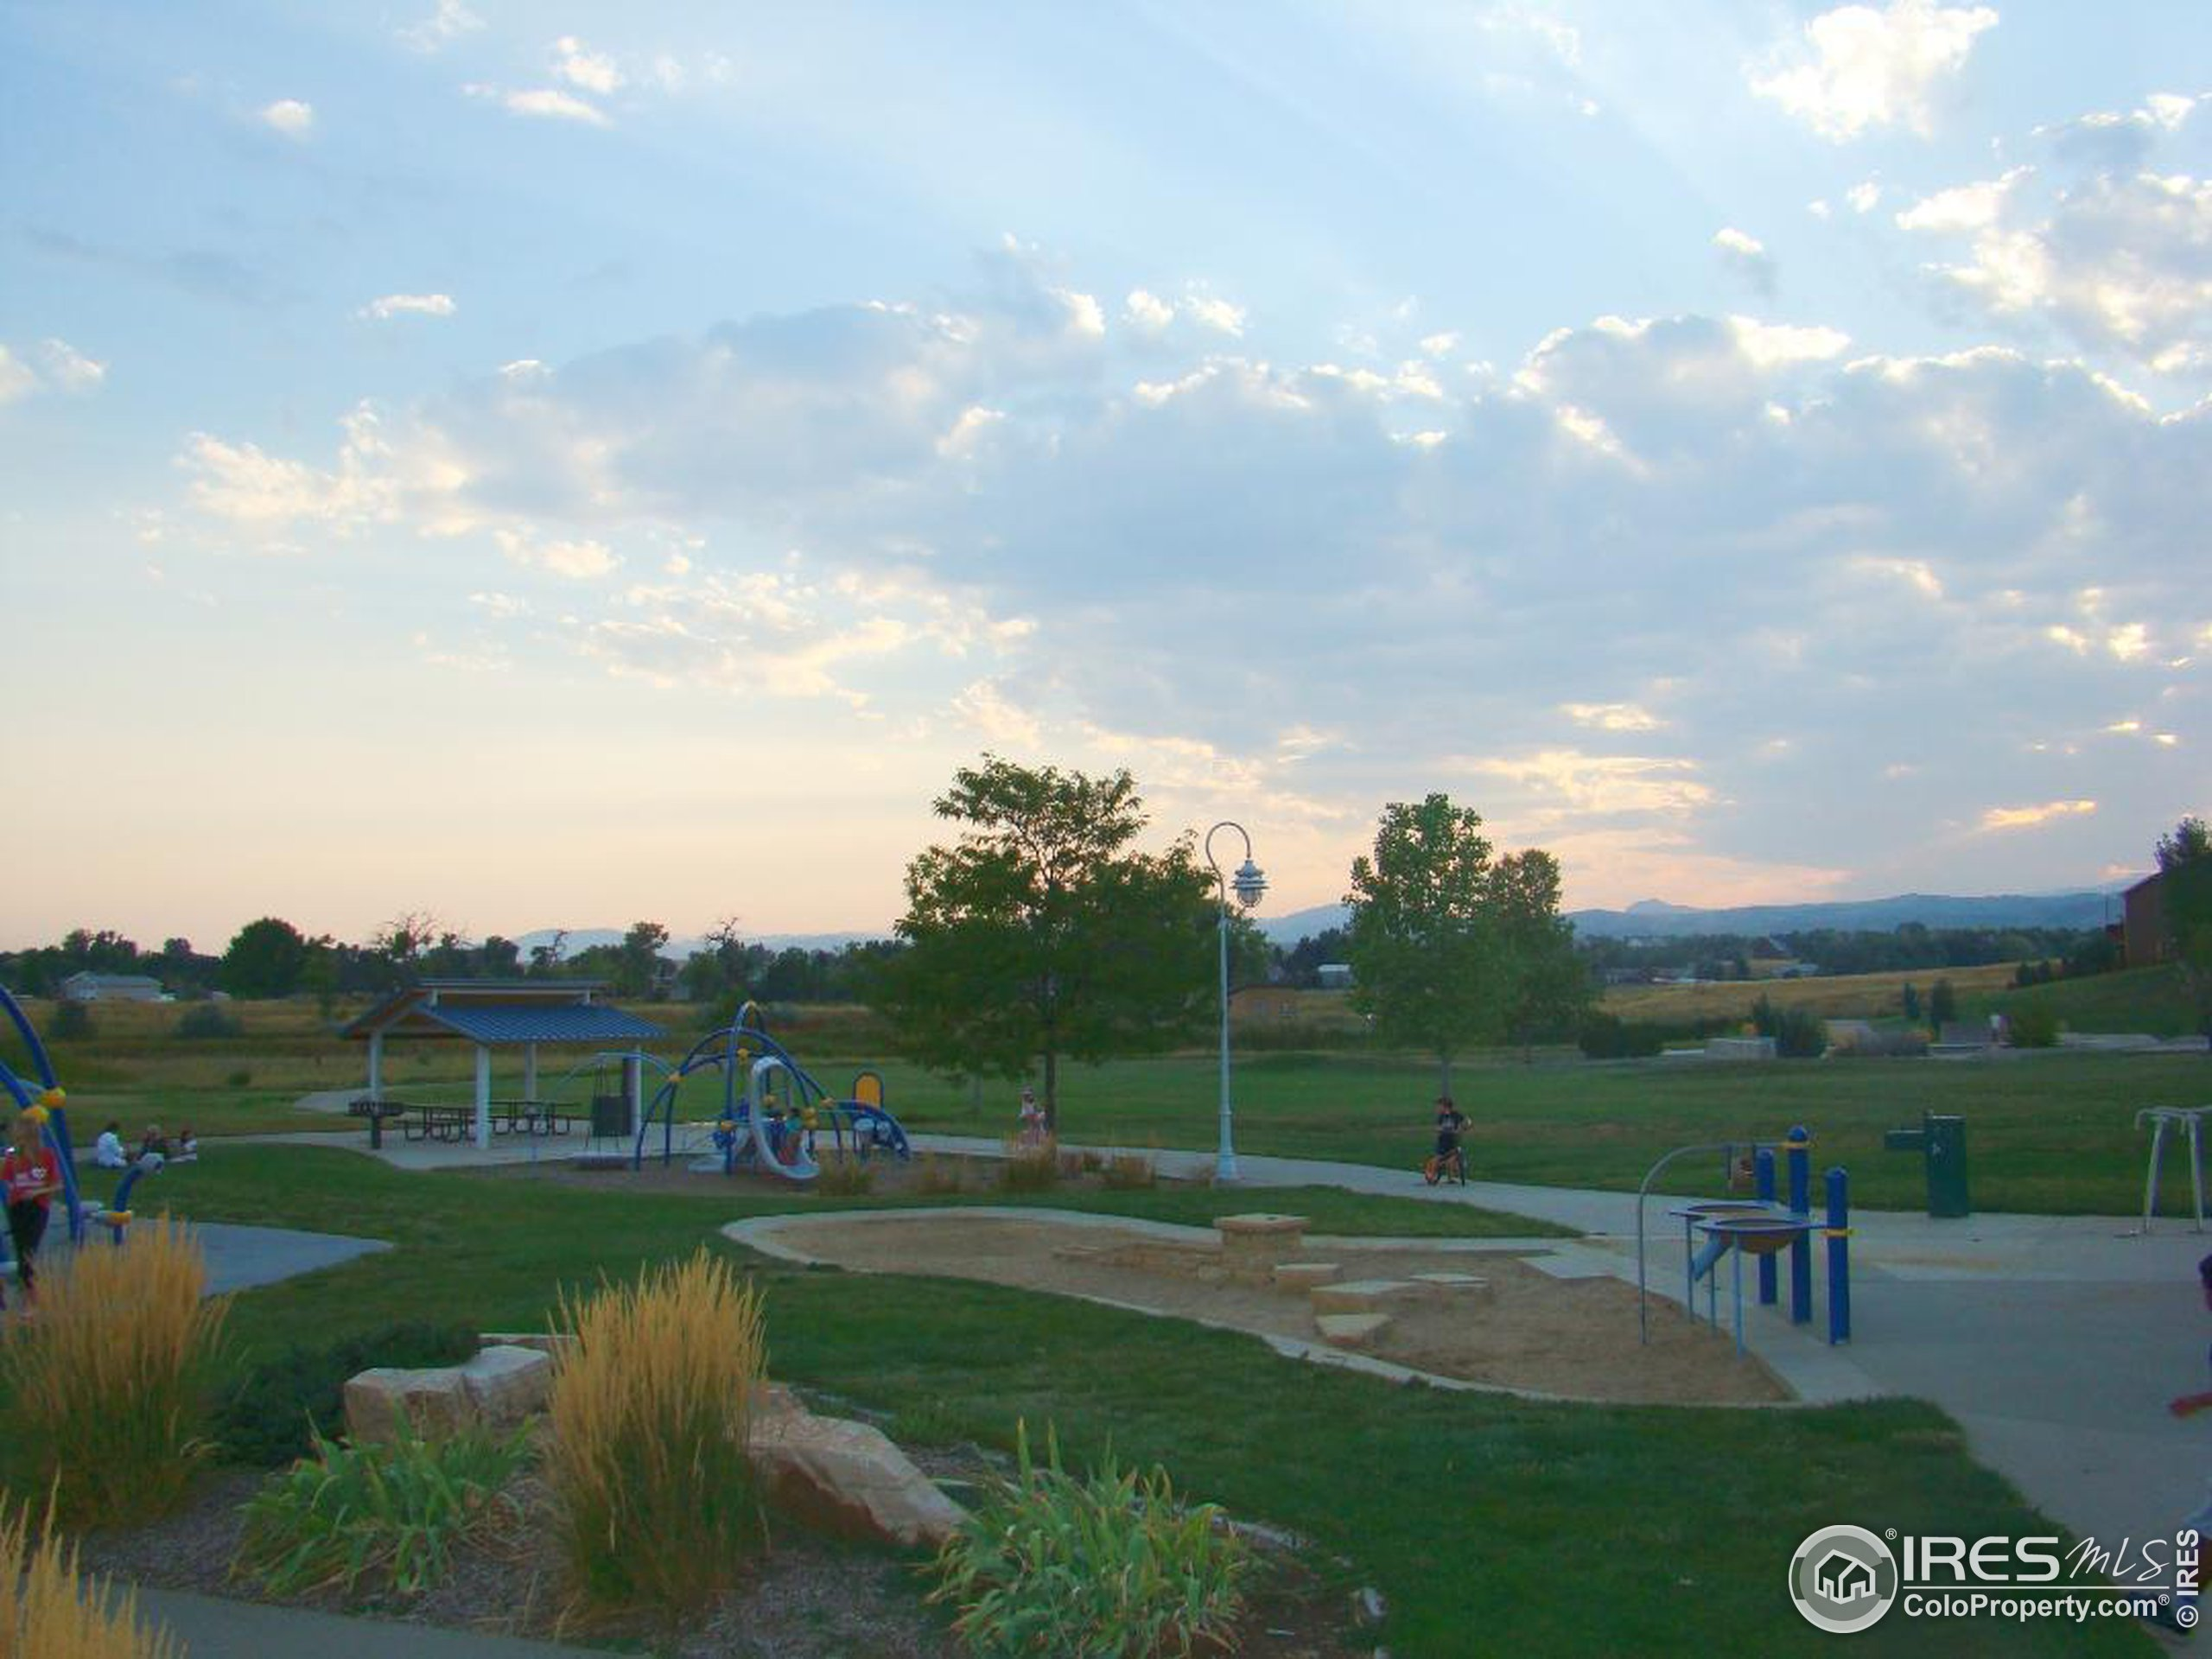 Evening at Water's Way Park, 2 minutes drive from the house